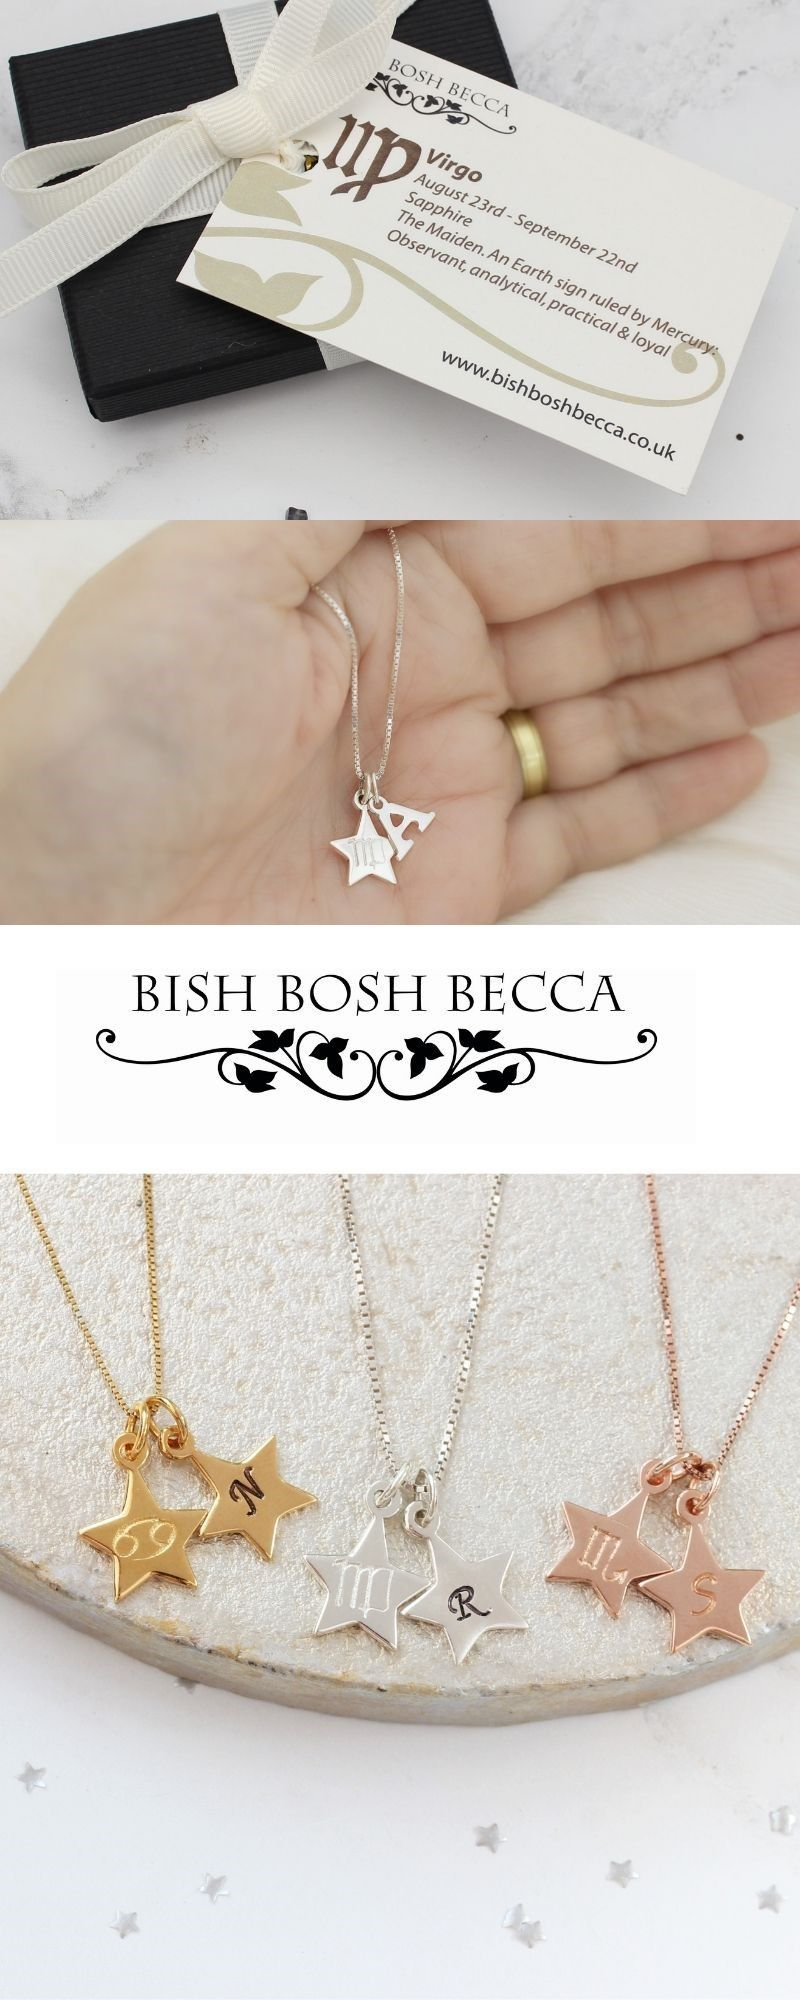 Featuring A Delightful Duo Of Star Shaped Charms The Zodiac Star Personalised Charm Personalized Charm Necklace Birthstone Charm Necklace Star Charm Necklace